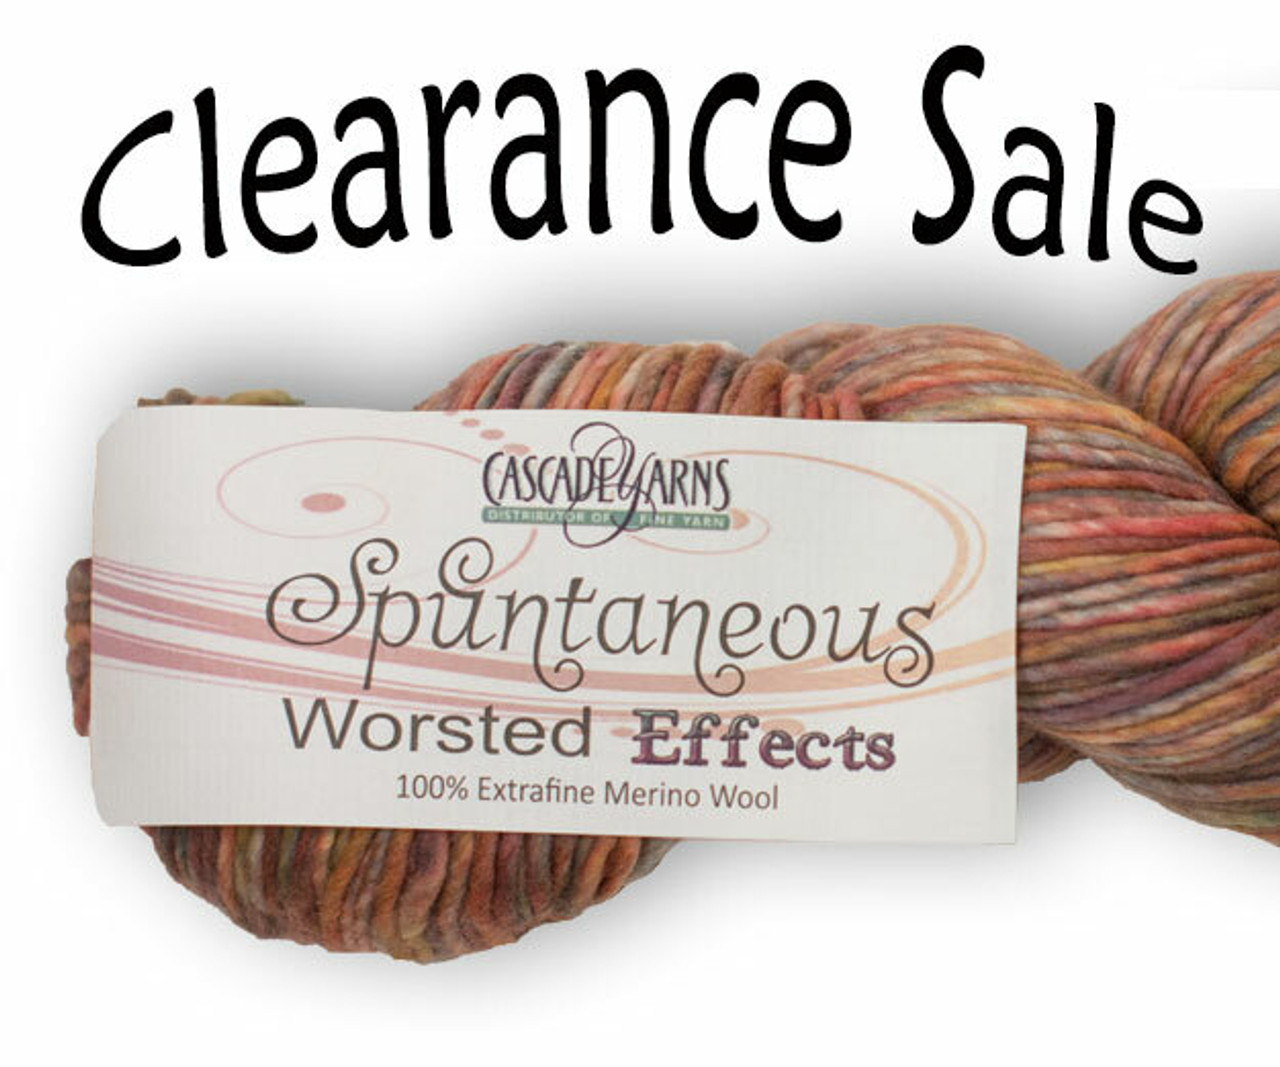 Cascade Yarns Spuntaneous Worsted Effects - Yarn Store